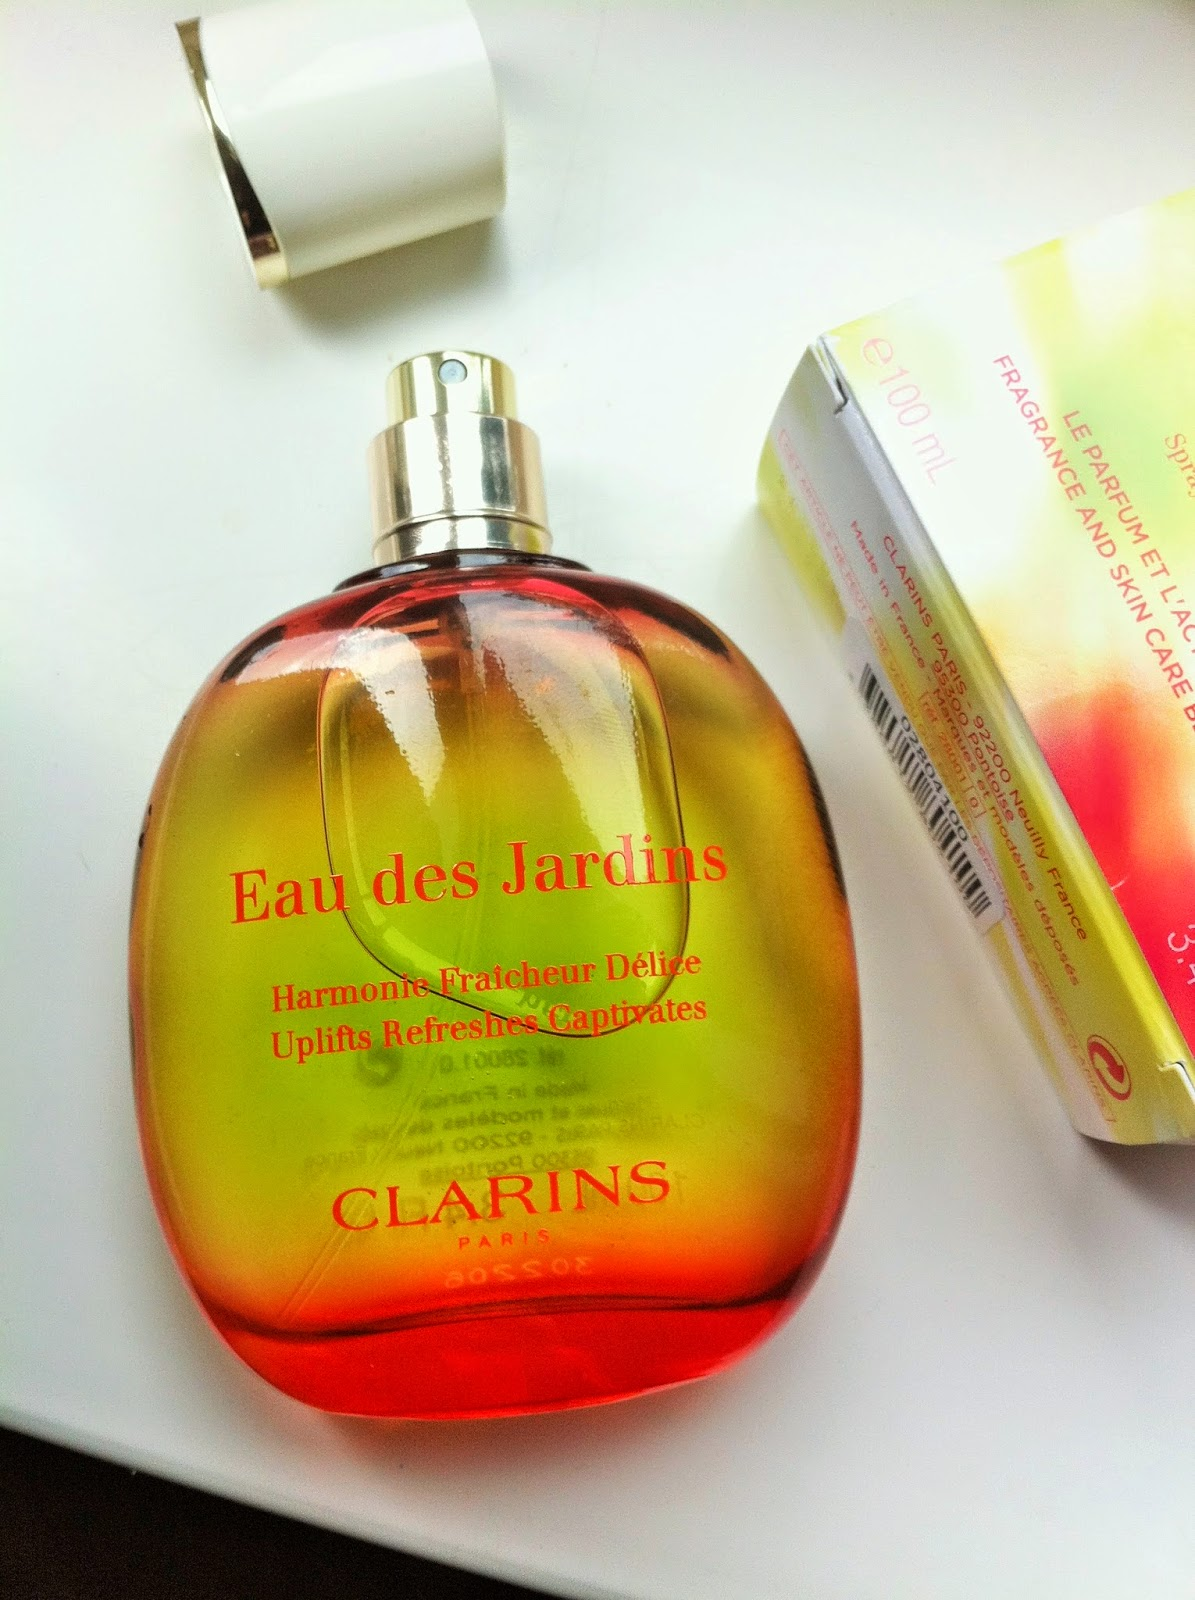 bows and pearls review clarins eau des jardins. Black Bedroom Furniture Sets. Home Design Ideas